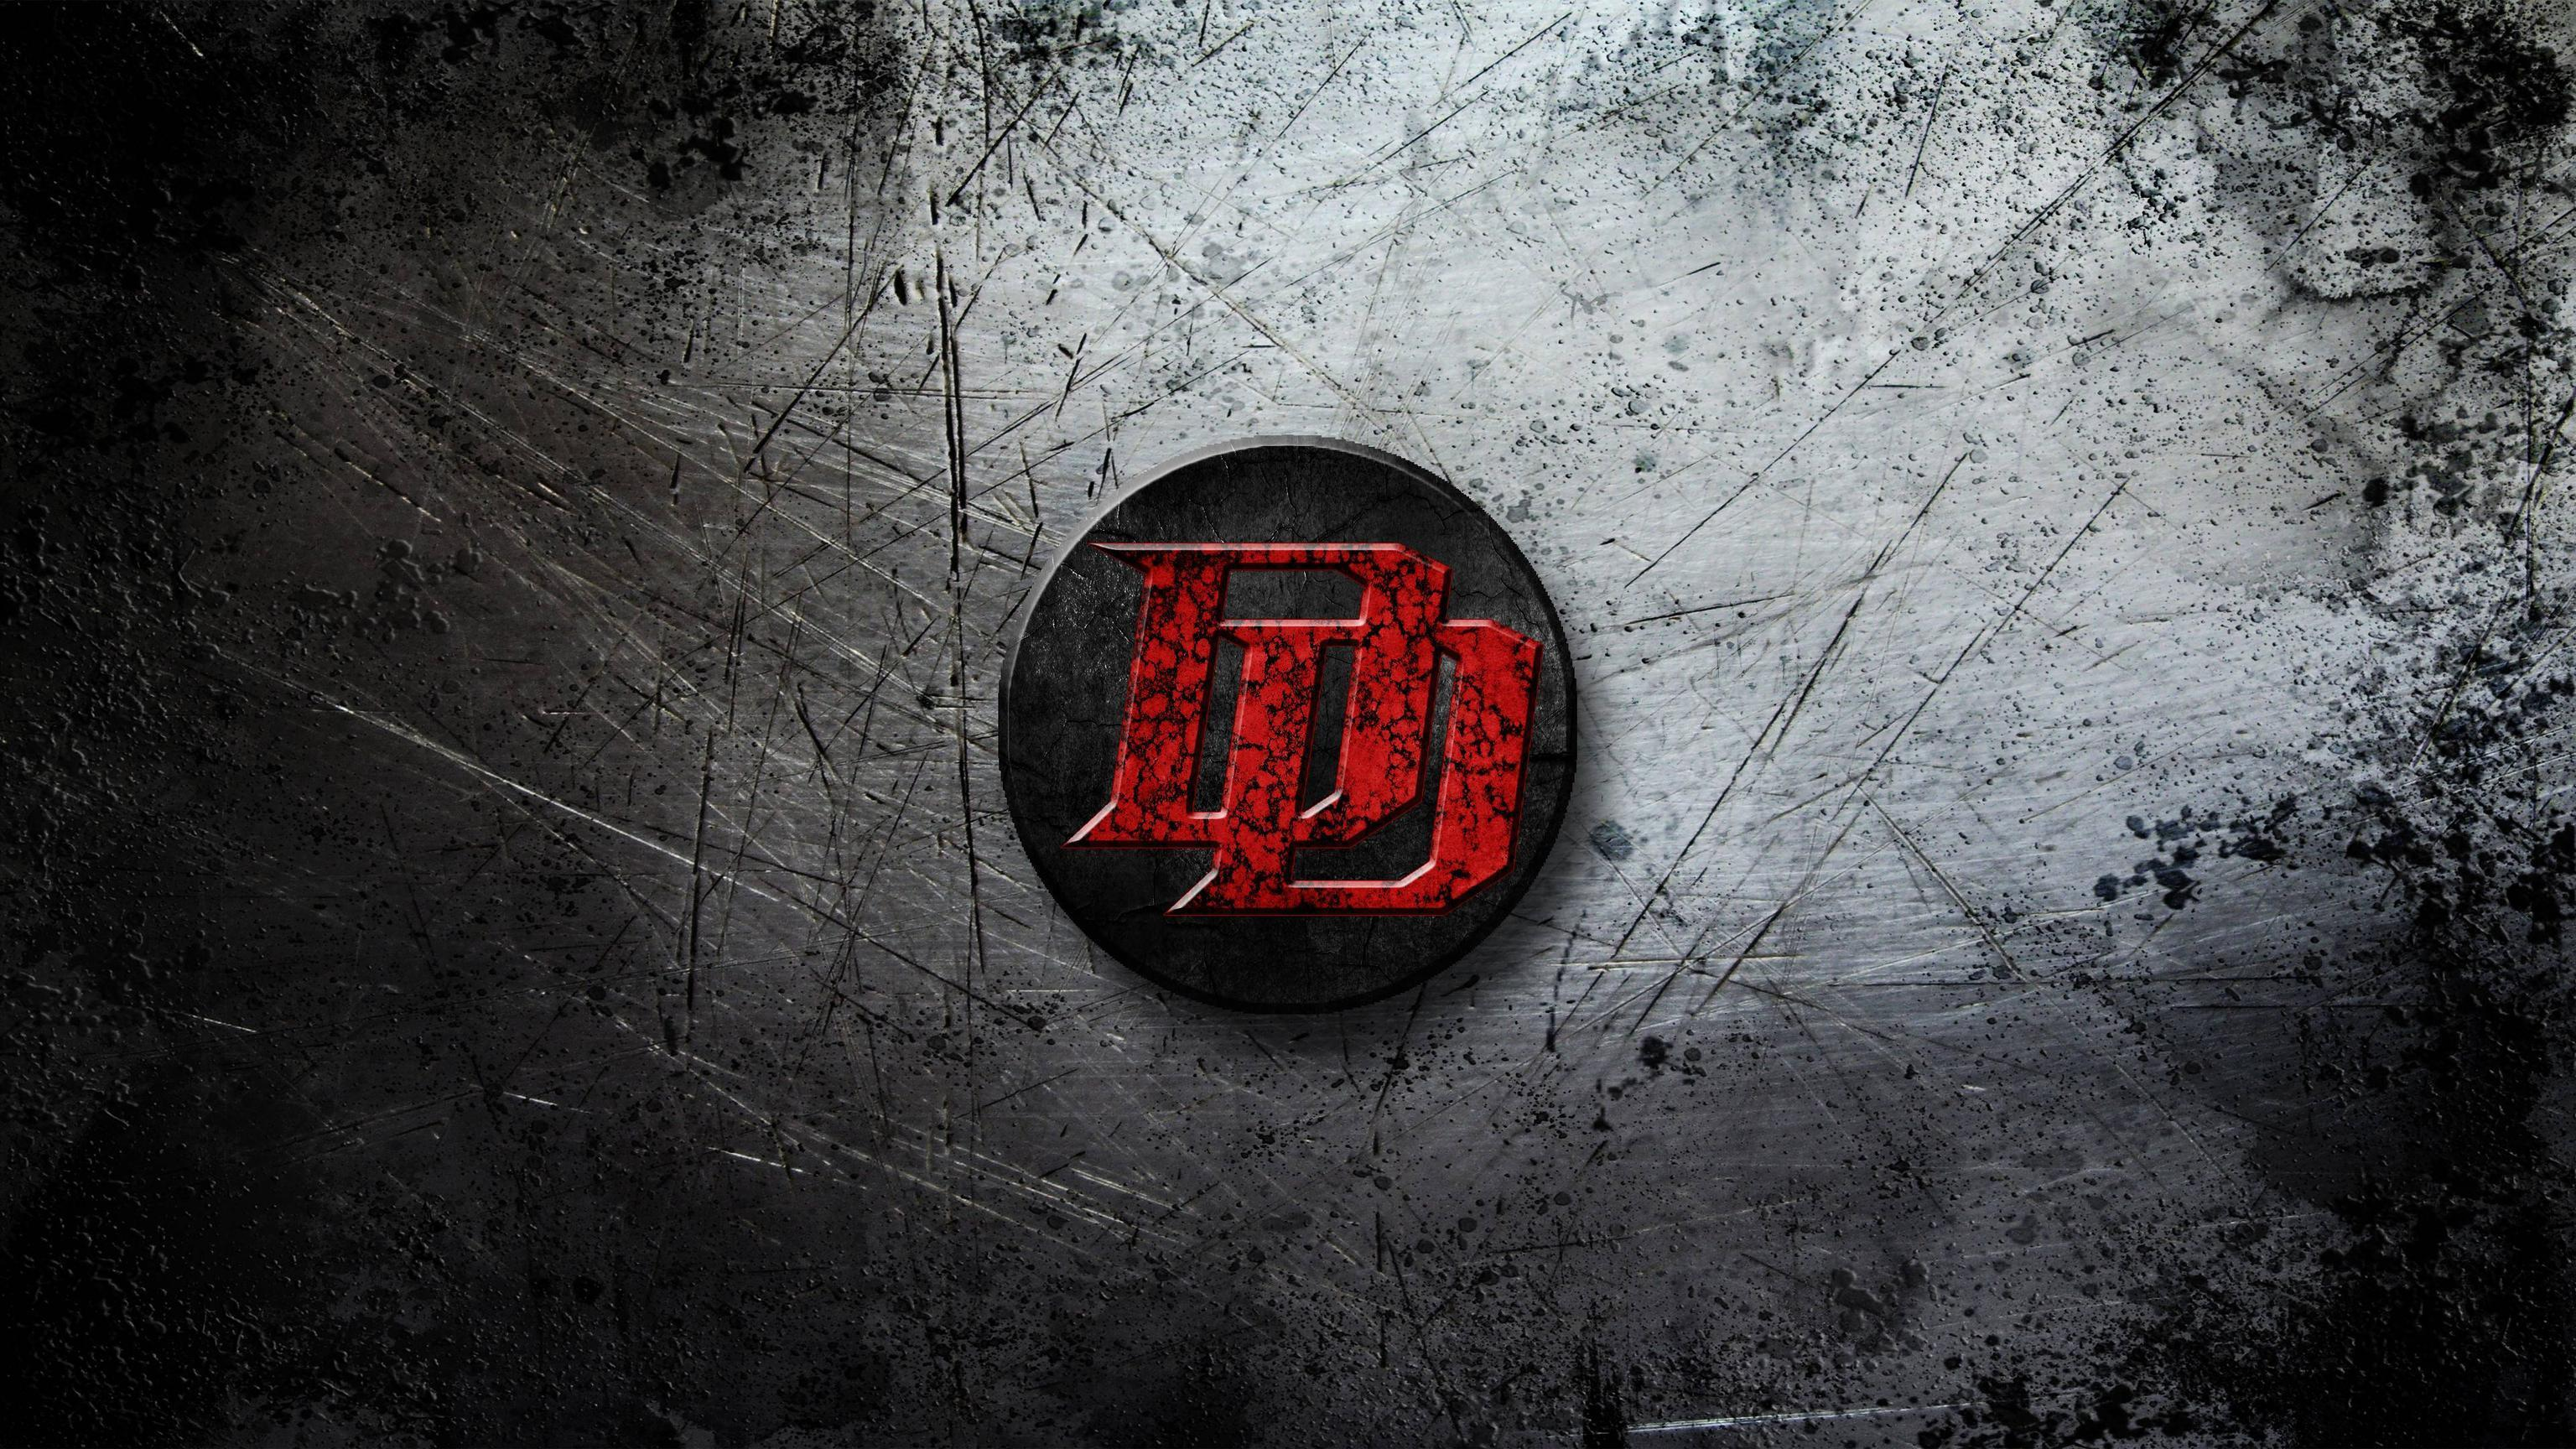 Image For > Daredevil Logo Wallpapers